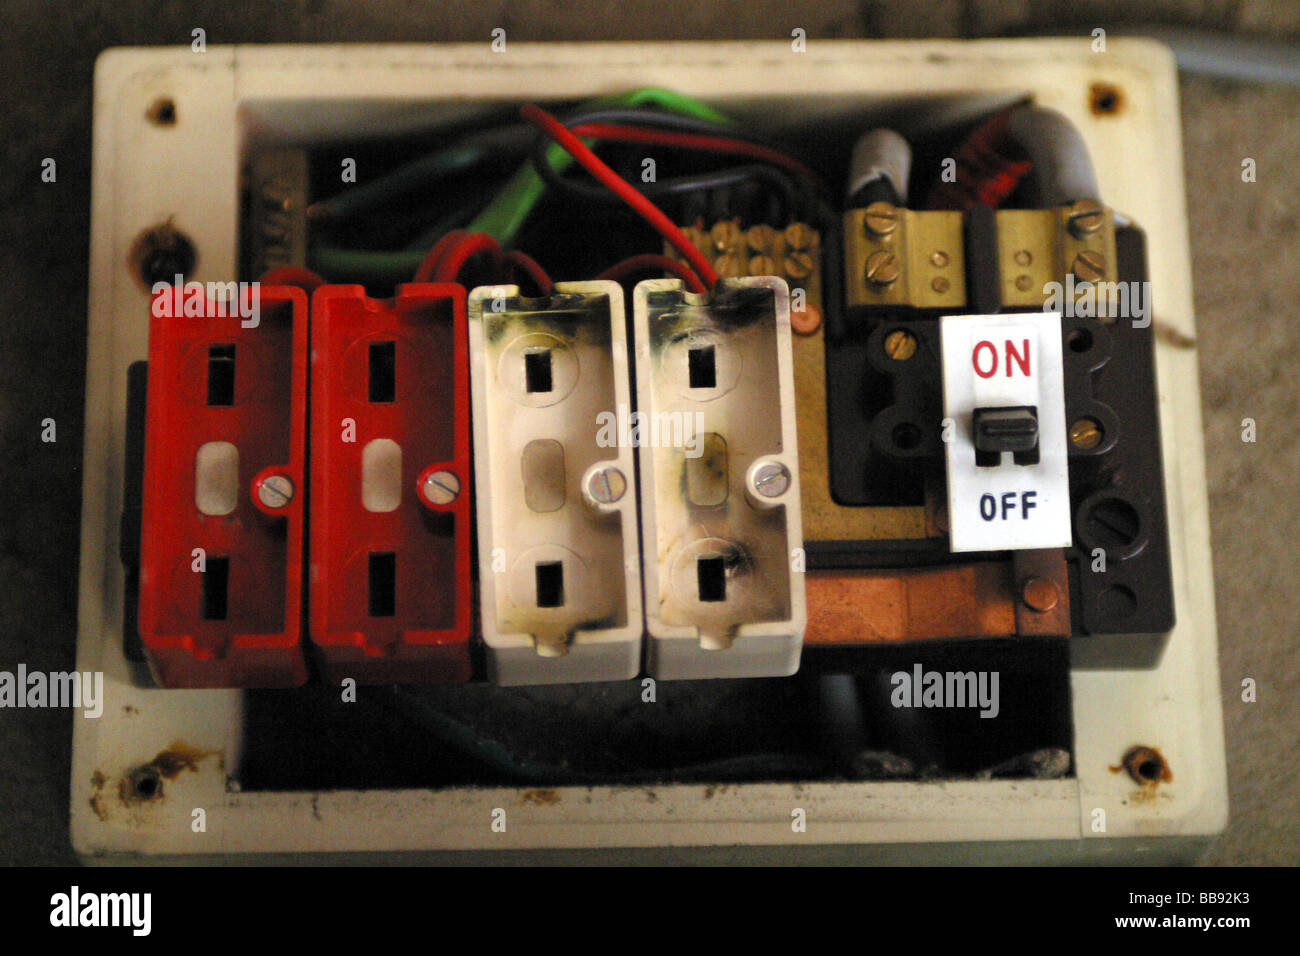 Wylex Fuse Box Old - Wiring Diagram Show loot-supply -  loot-supply.bilancestube.it | Wylex Standard Fuse Box |  | loot-supply.bilancestube.it